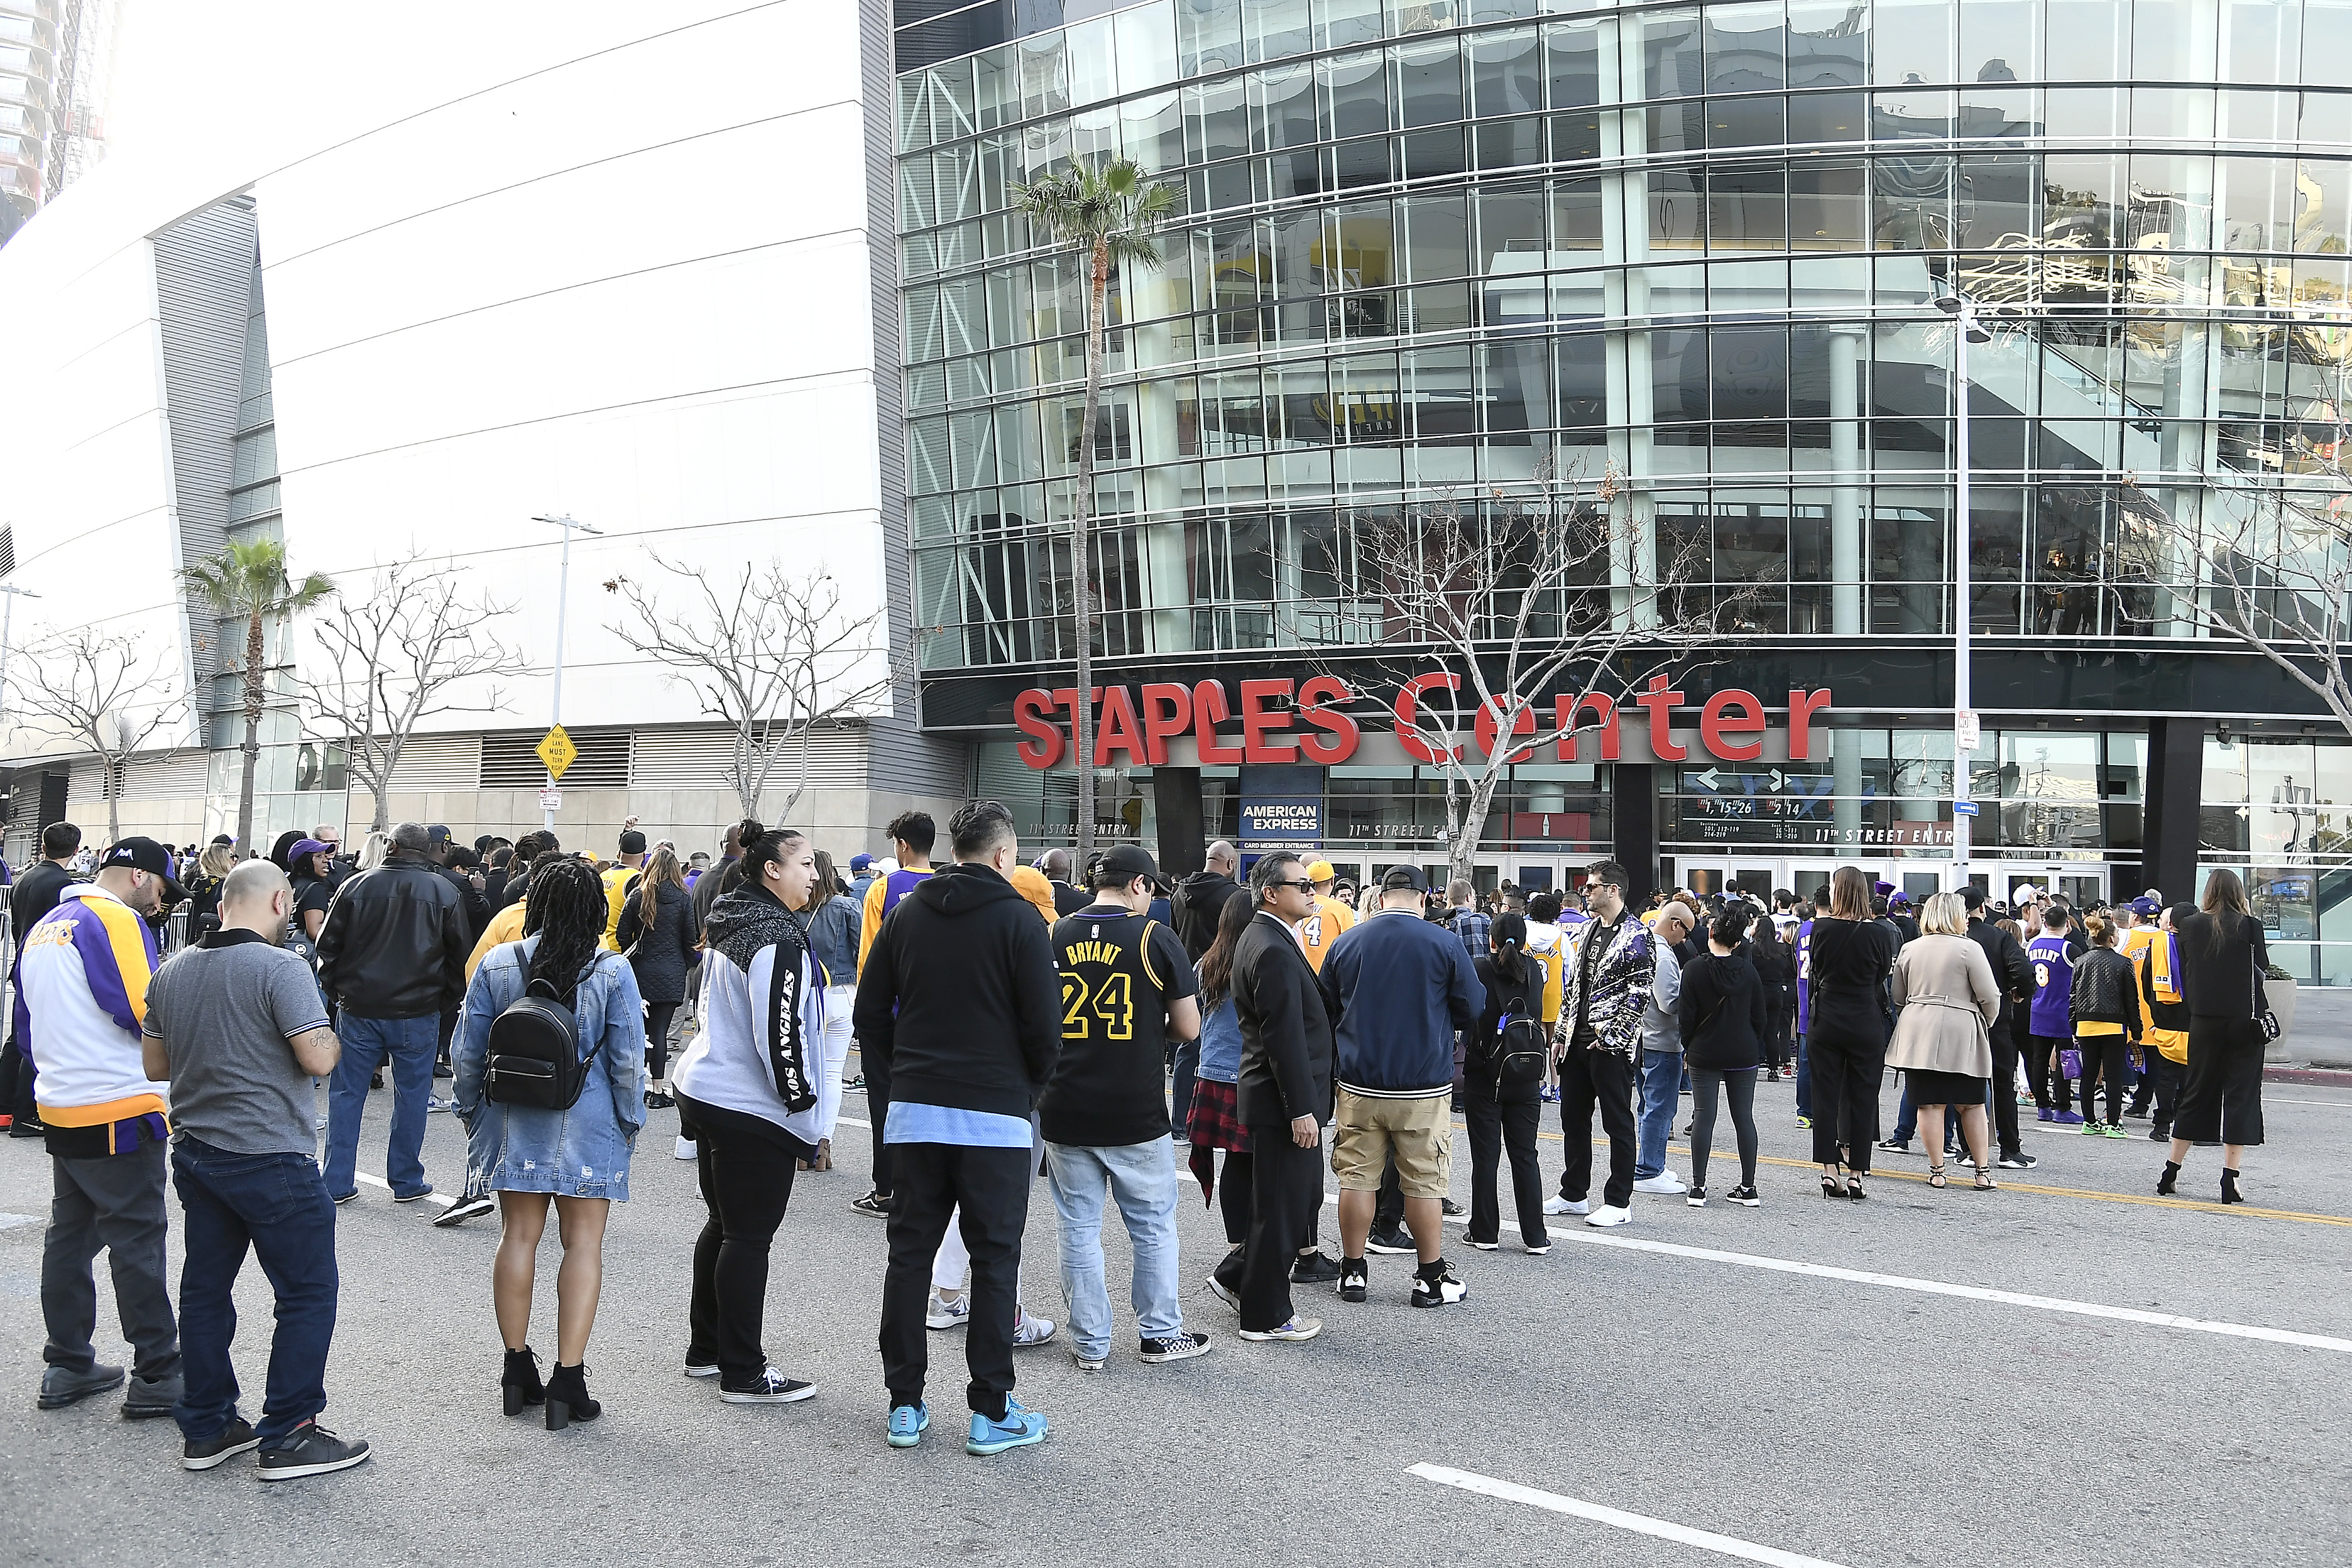 Fans arrive outside prior to a memorial service for Kobe and Gianna Bryant at Staples Center on February 24, 2020 in Los Angeles, California.